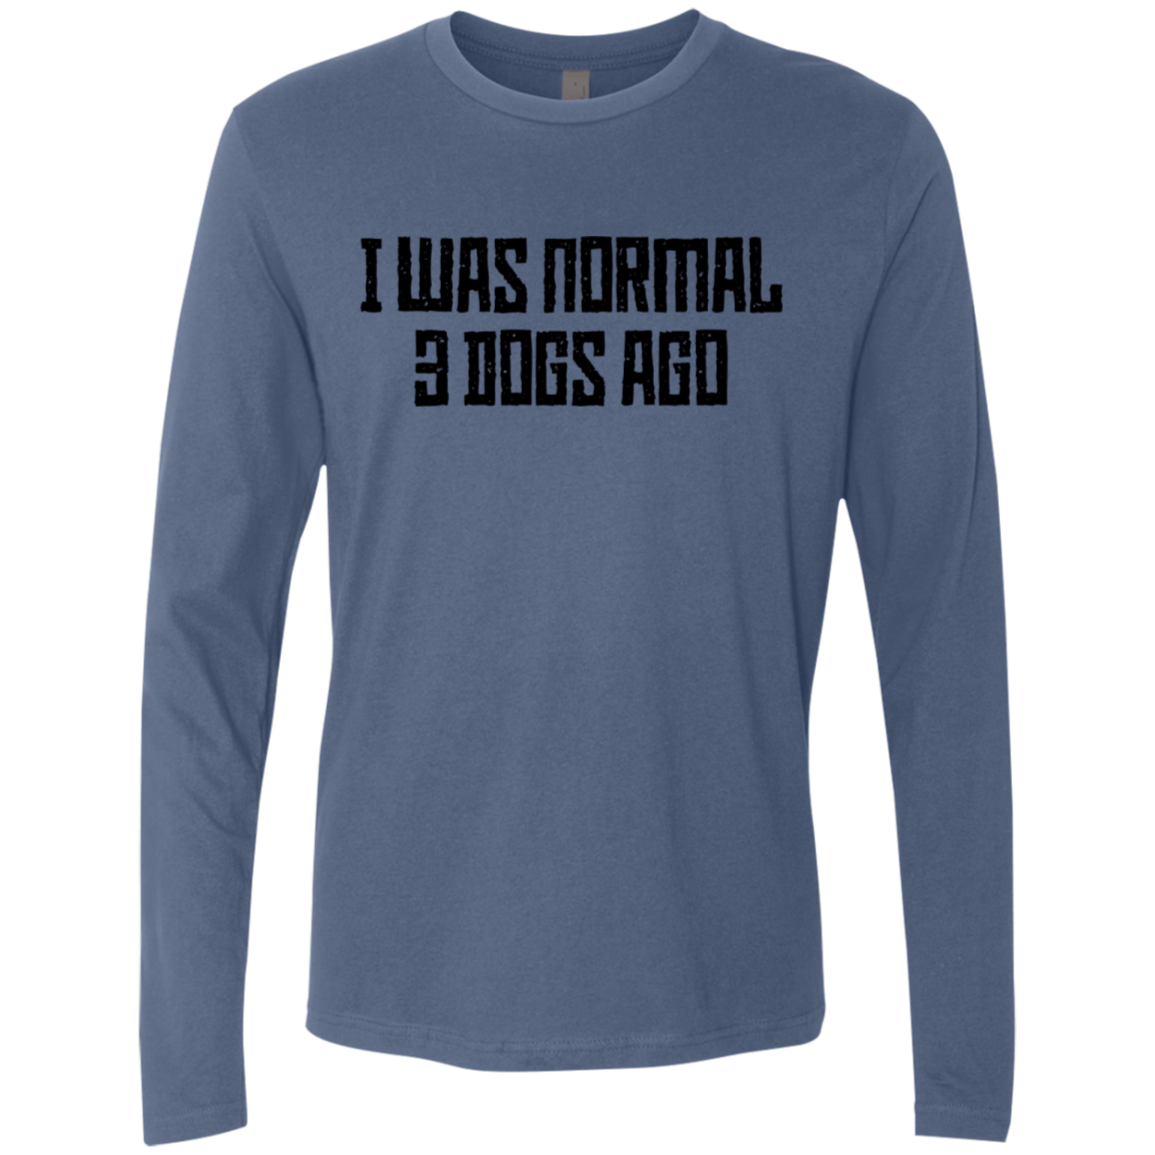 I Was Normal 3 Dogs Ago Men's Long Sleeve Tee